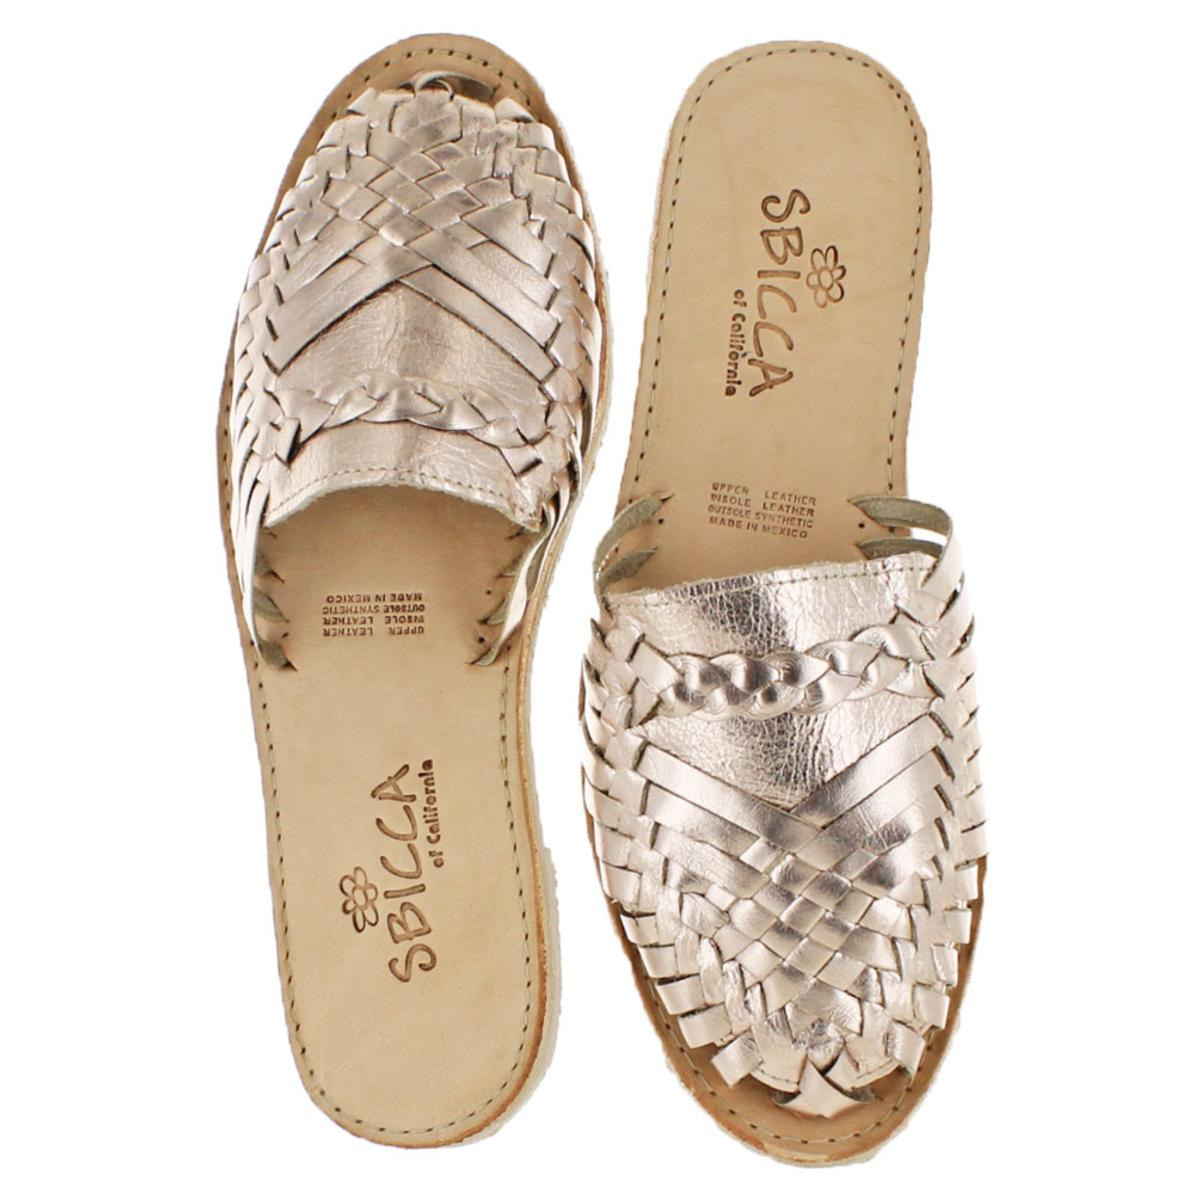 Sbicca Baines Women/'s Leather Woven Slip-On Vintage Flat Casual Sandals Shoes